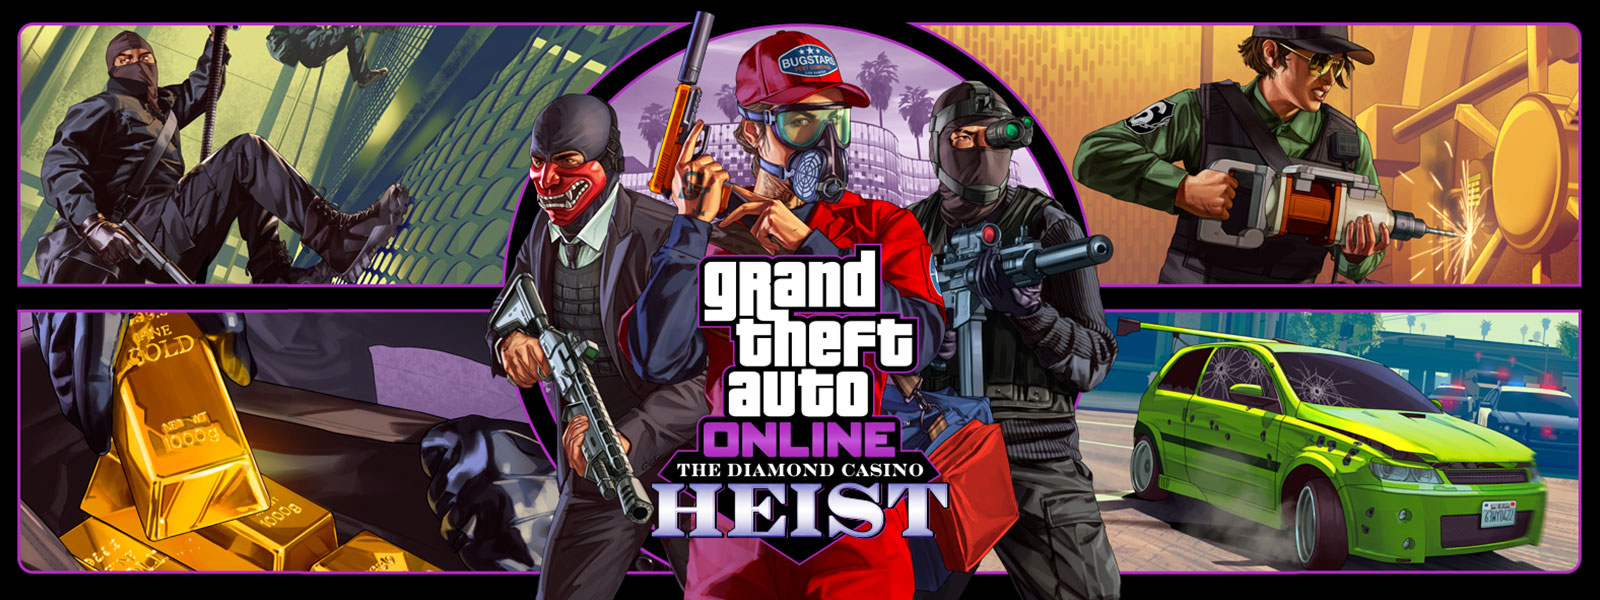 gta-online-casino-heist-wanted-glitch